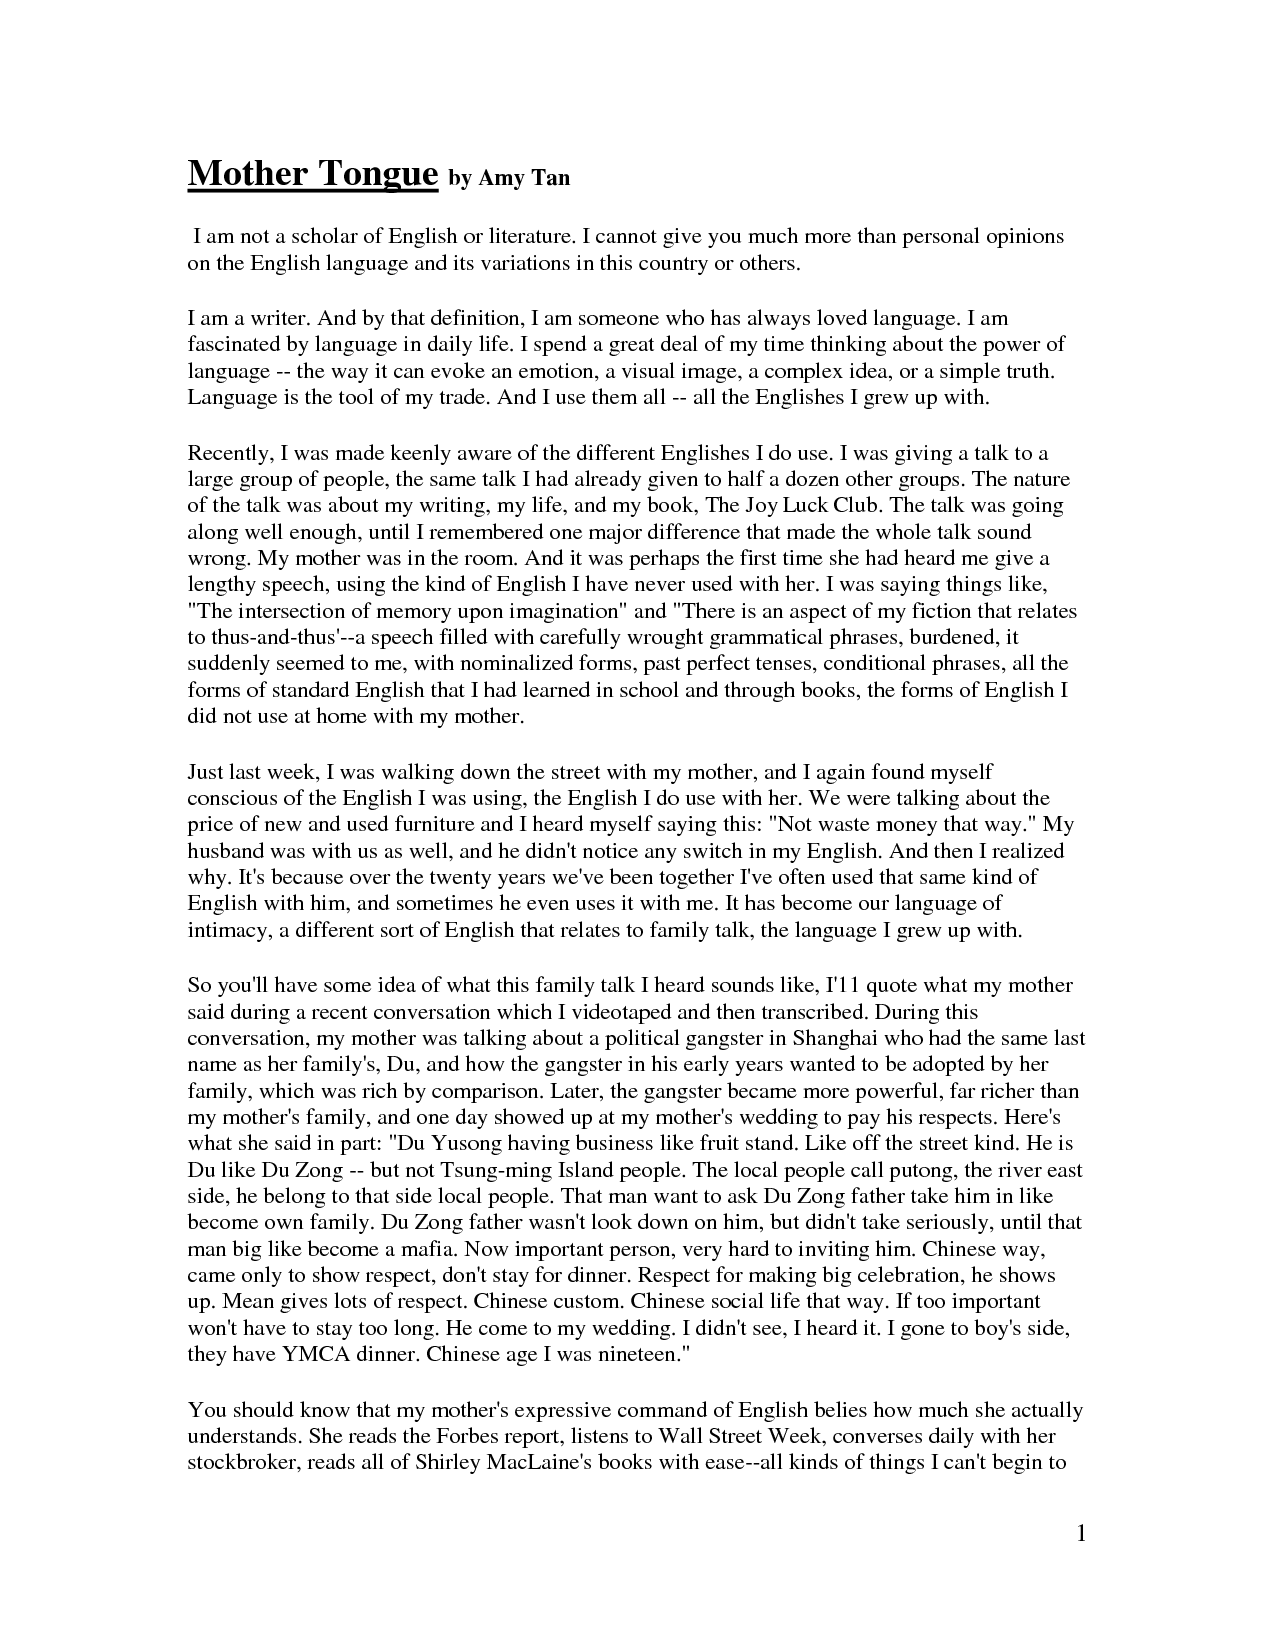 an essay on mother tongue I enjoyed reading mother tongue by amy tan i thought by just reading the first paragraph that i was able to make a strong connection with amy tan and her essay  throughout most of my life, my great grandparents were around both of them were right off the boat from sicily, italy you could say.